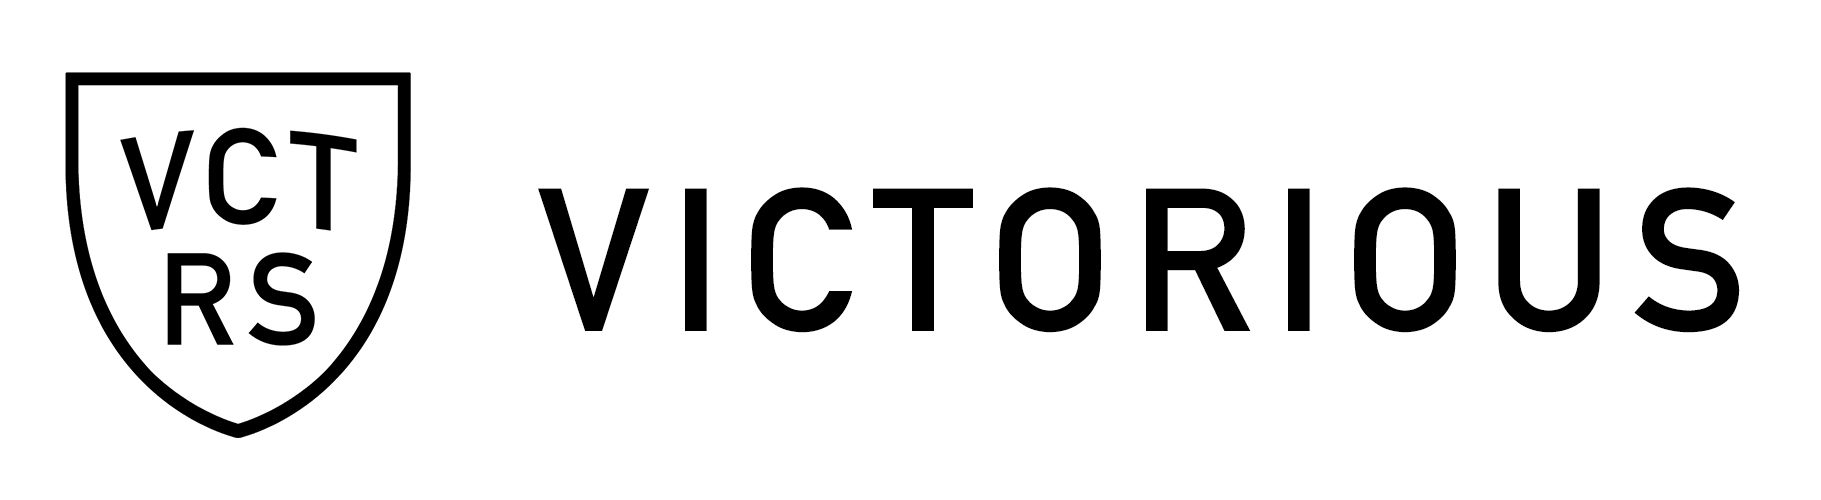 VICTORIOUS ATHLETIC